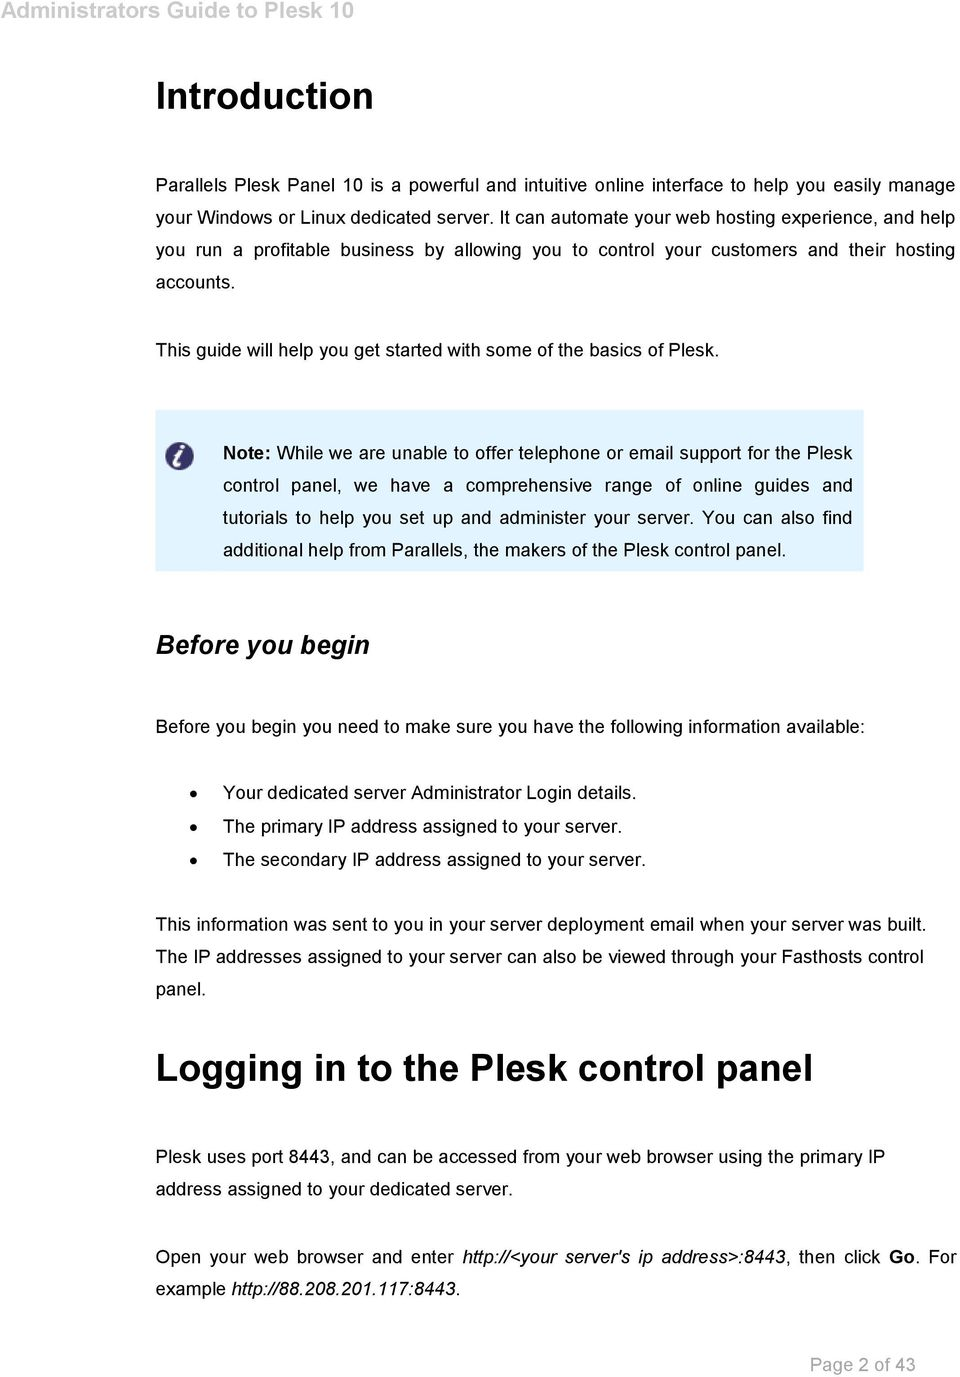 This guide will help you get started with some of the basics of Plesk.